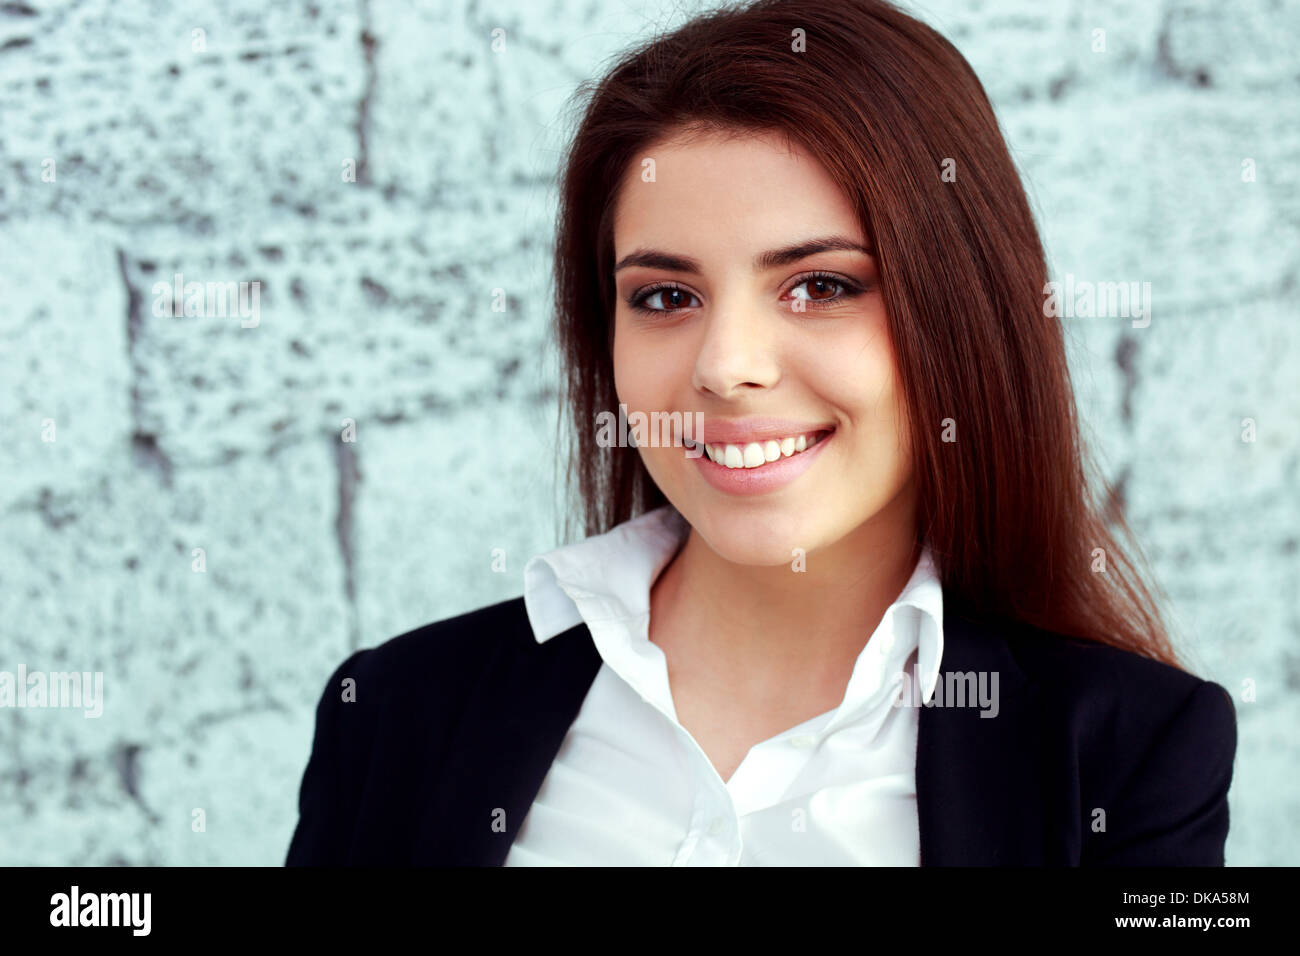 Closeup portrait of a young happy businesswoman near brick wall Stock Photo